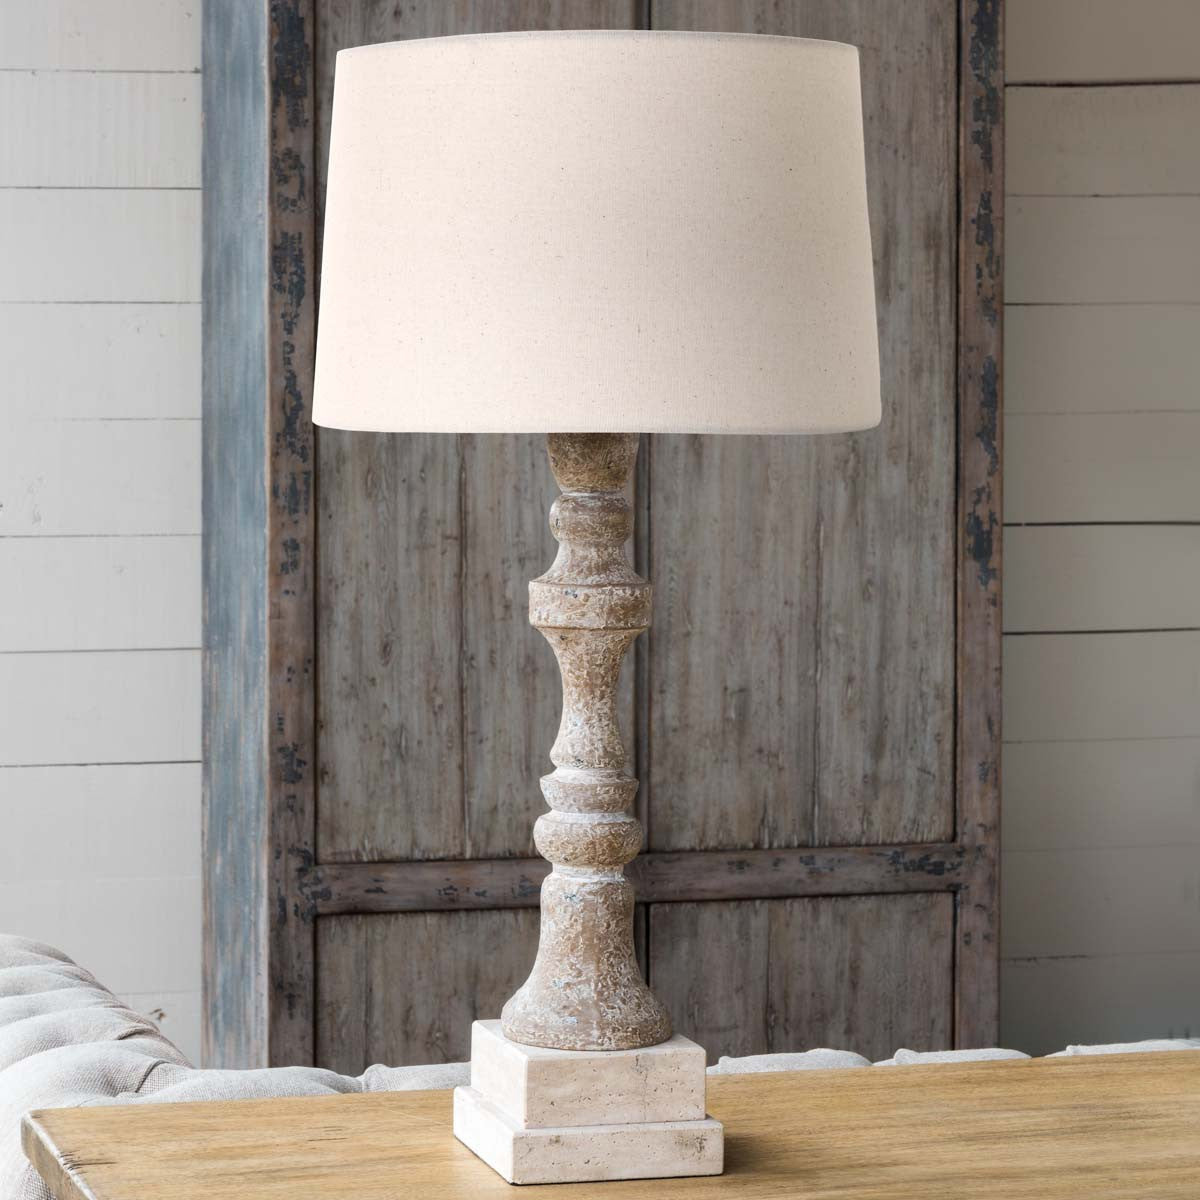 Spindle & Stone Lamp